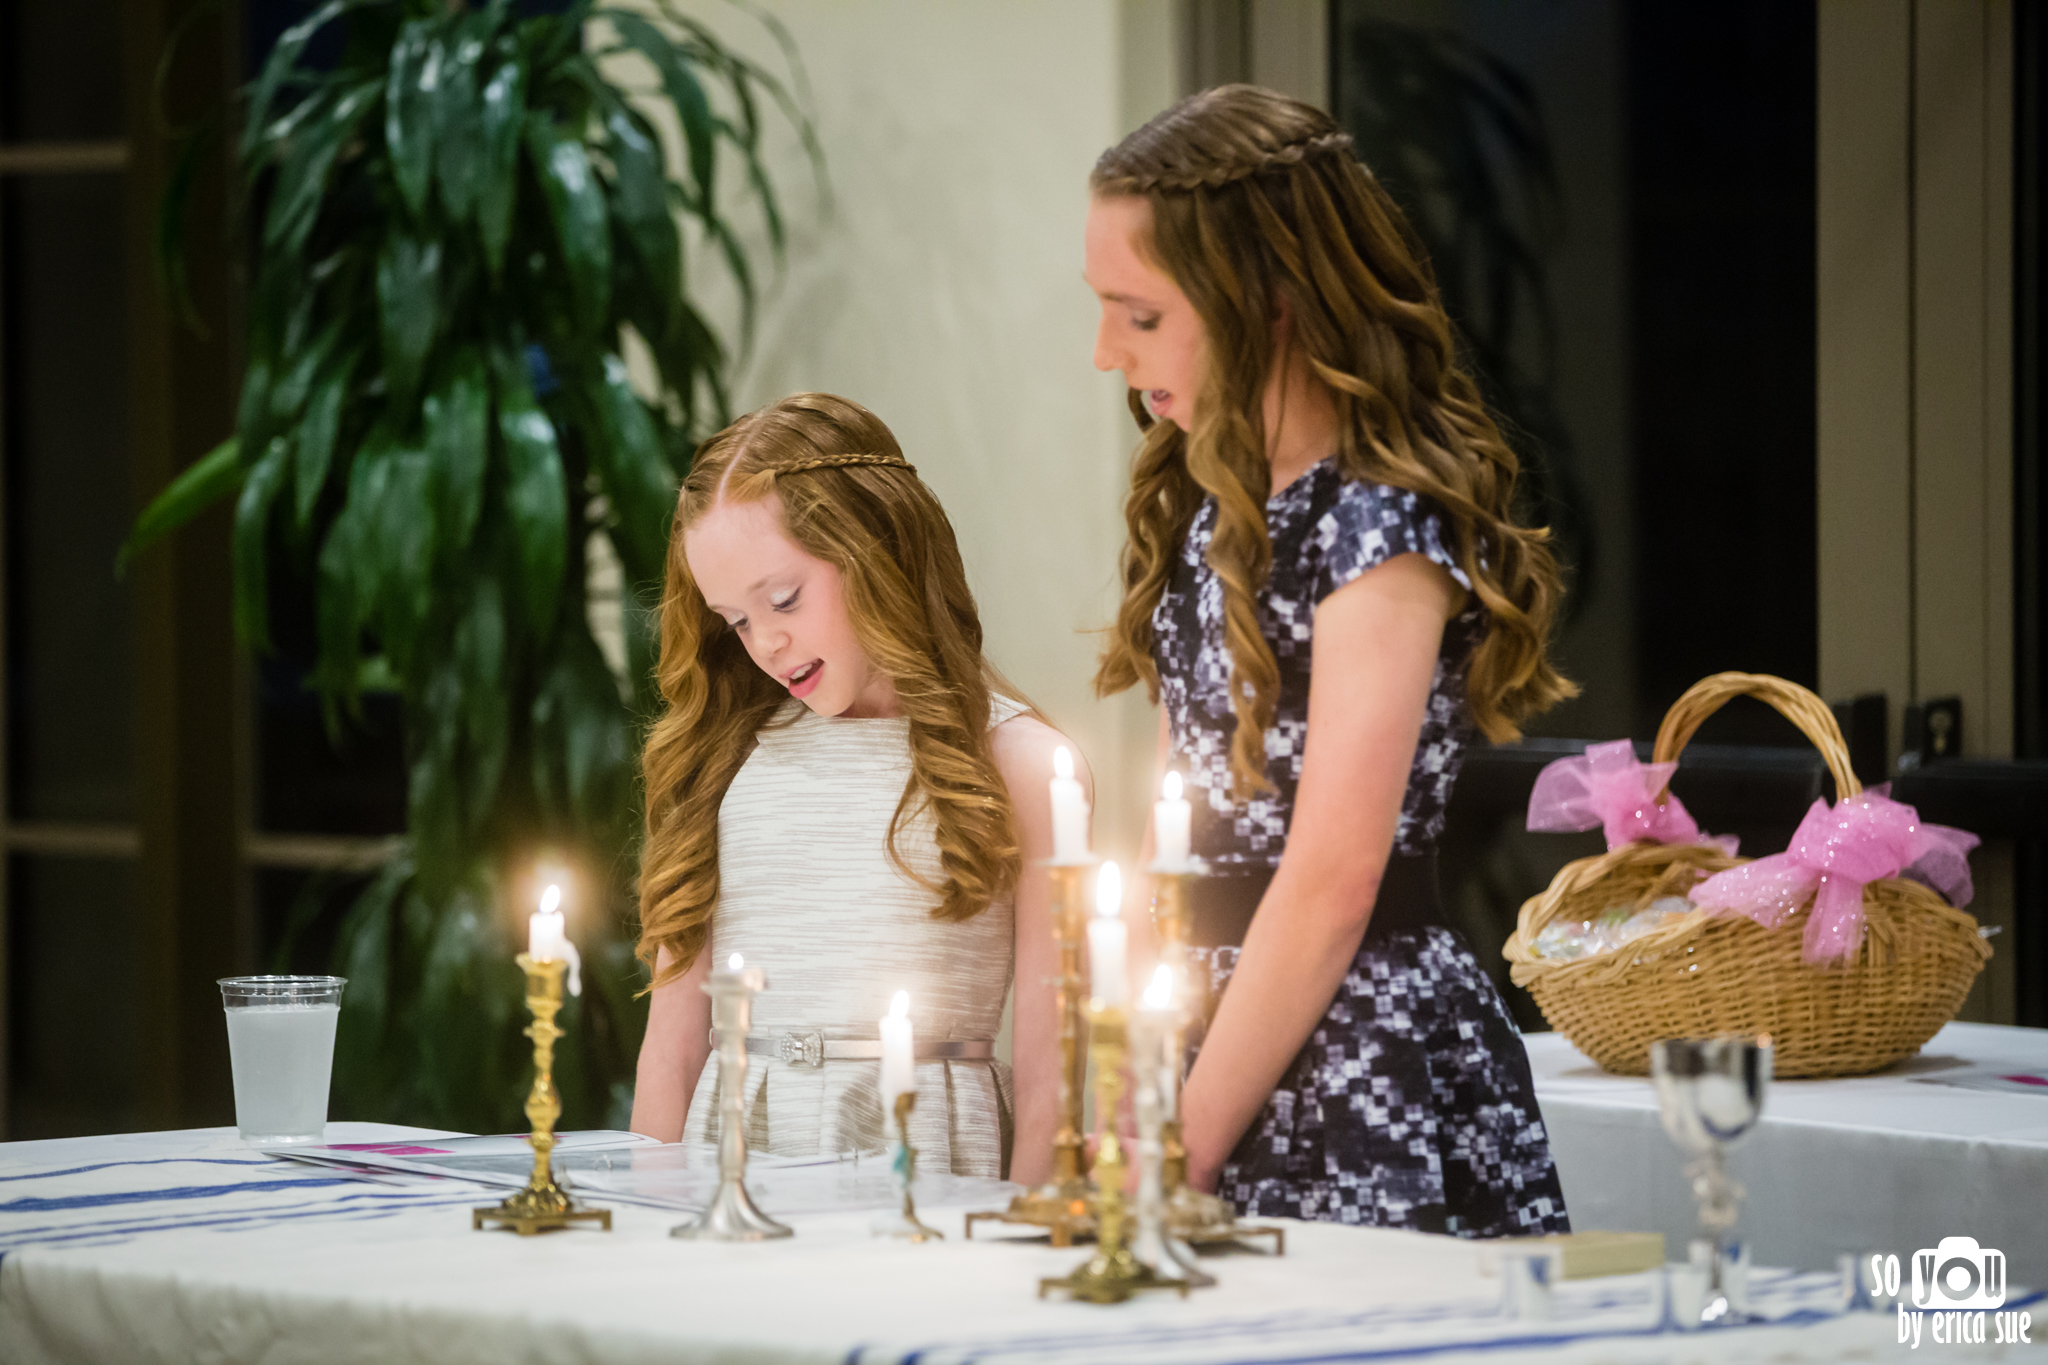 parkland-fl-mitzvah-photography-so-you-by-erica-sue-9842.jpg